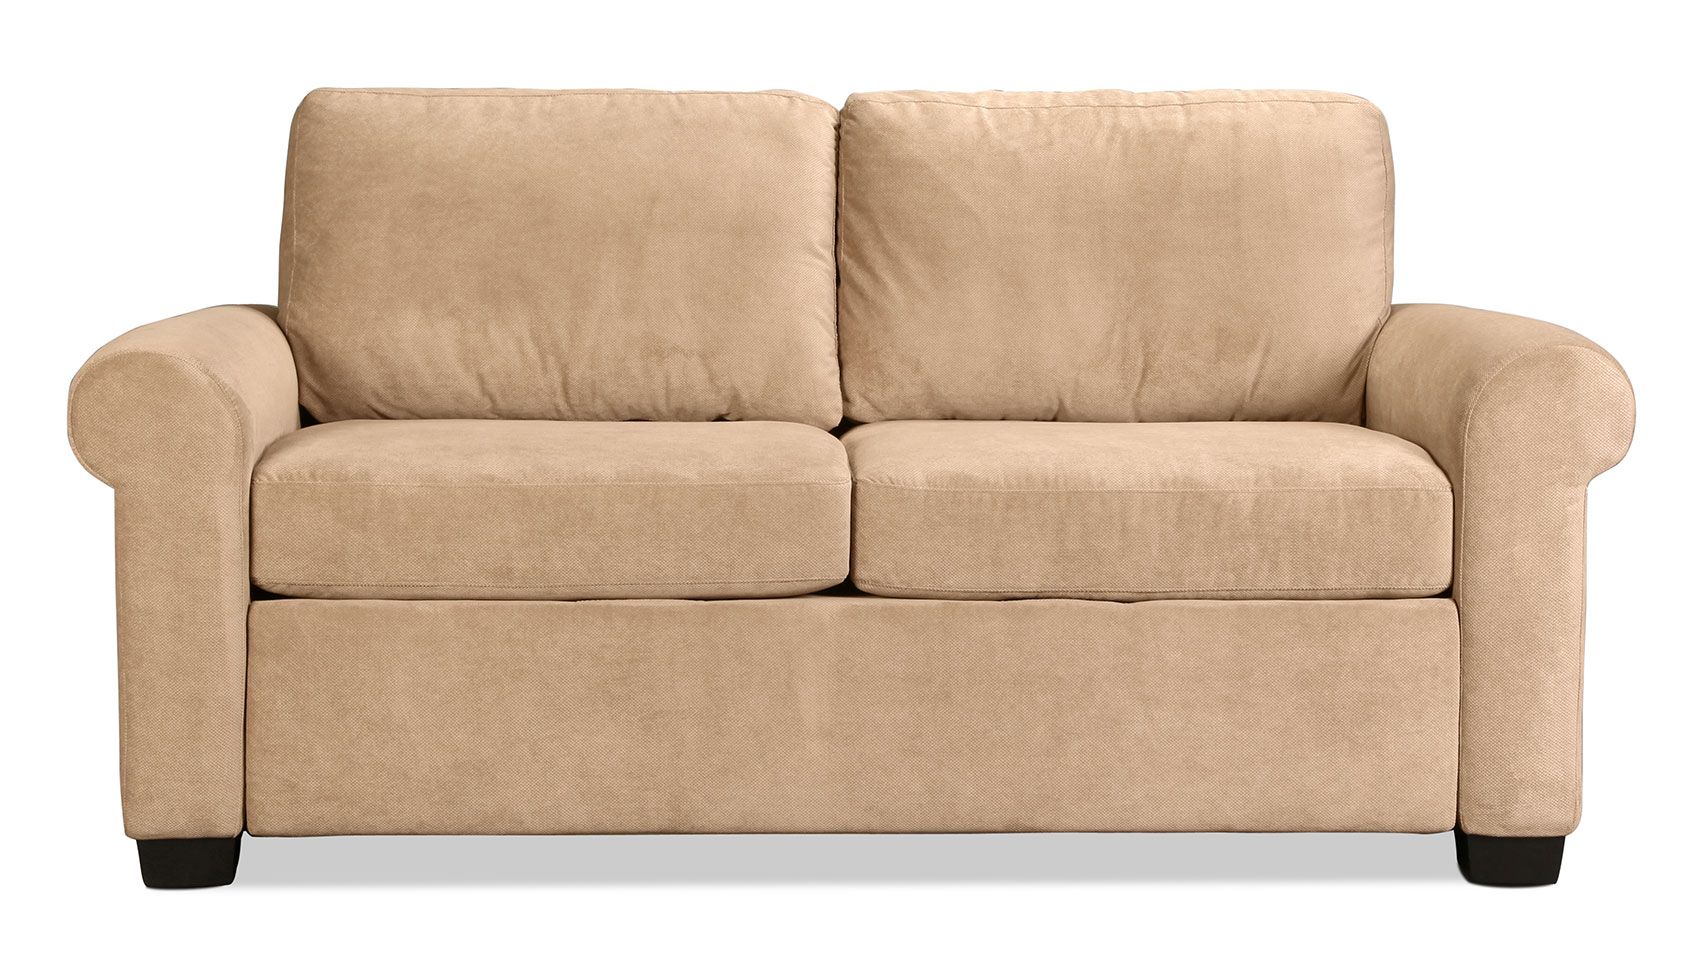 Levin Signature Full Sleeper Sofa - Brownstone